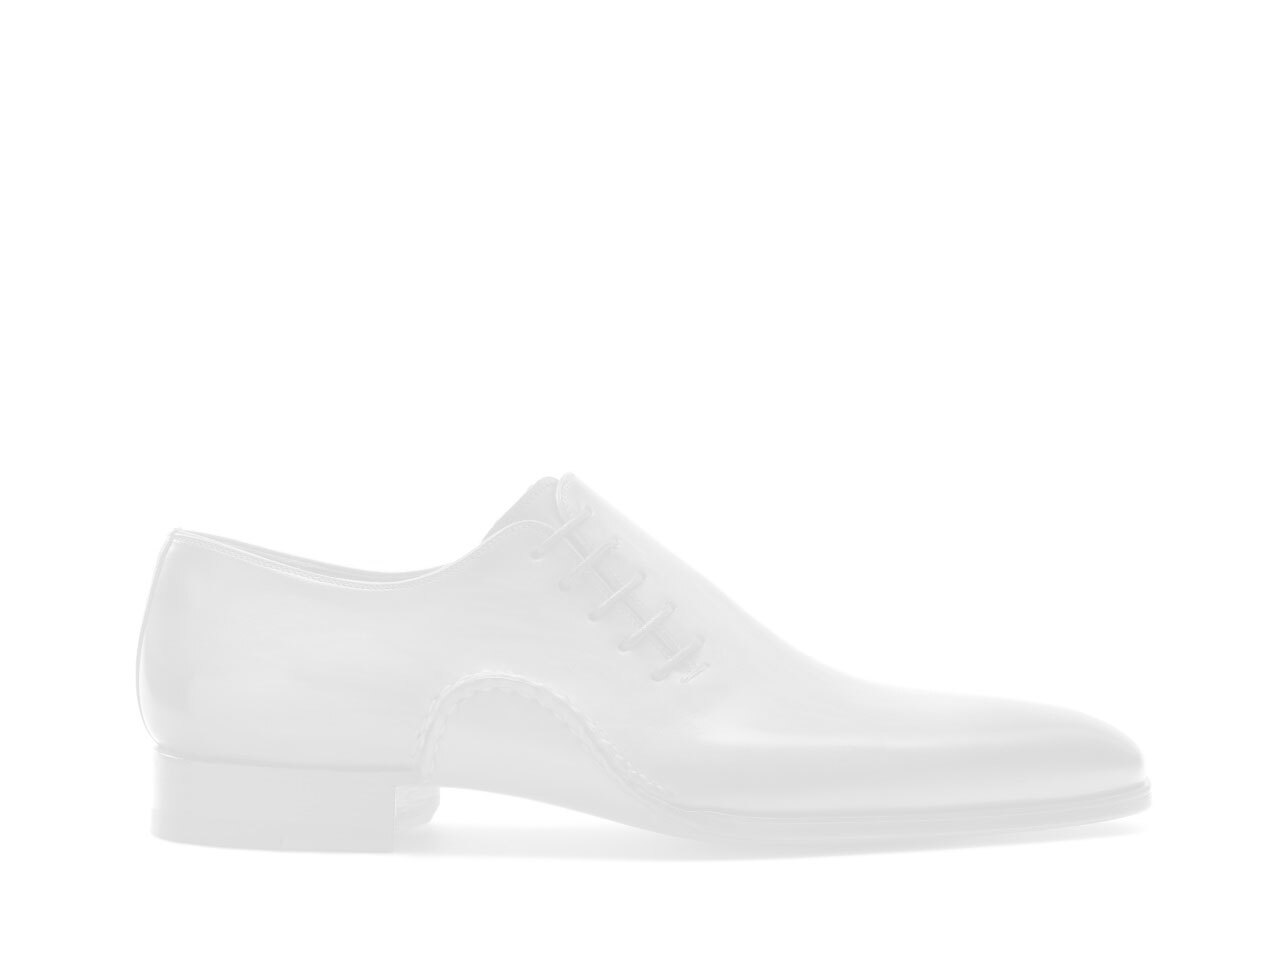 Side view of the Magnanni Niguel Grey Men's Tassel Loafers